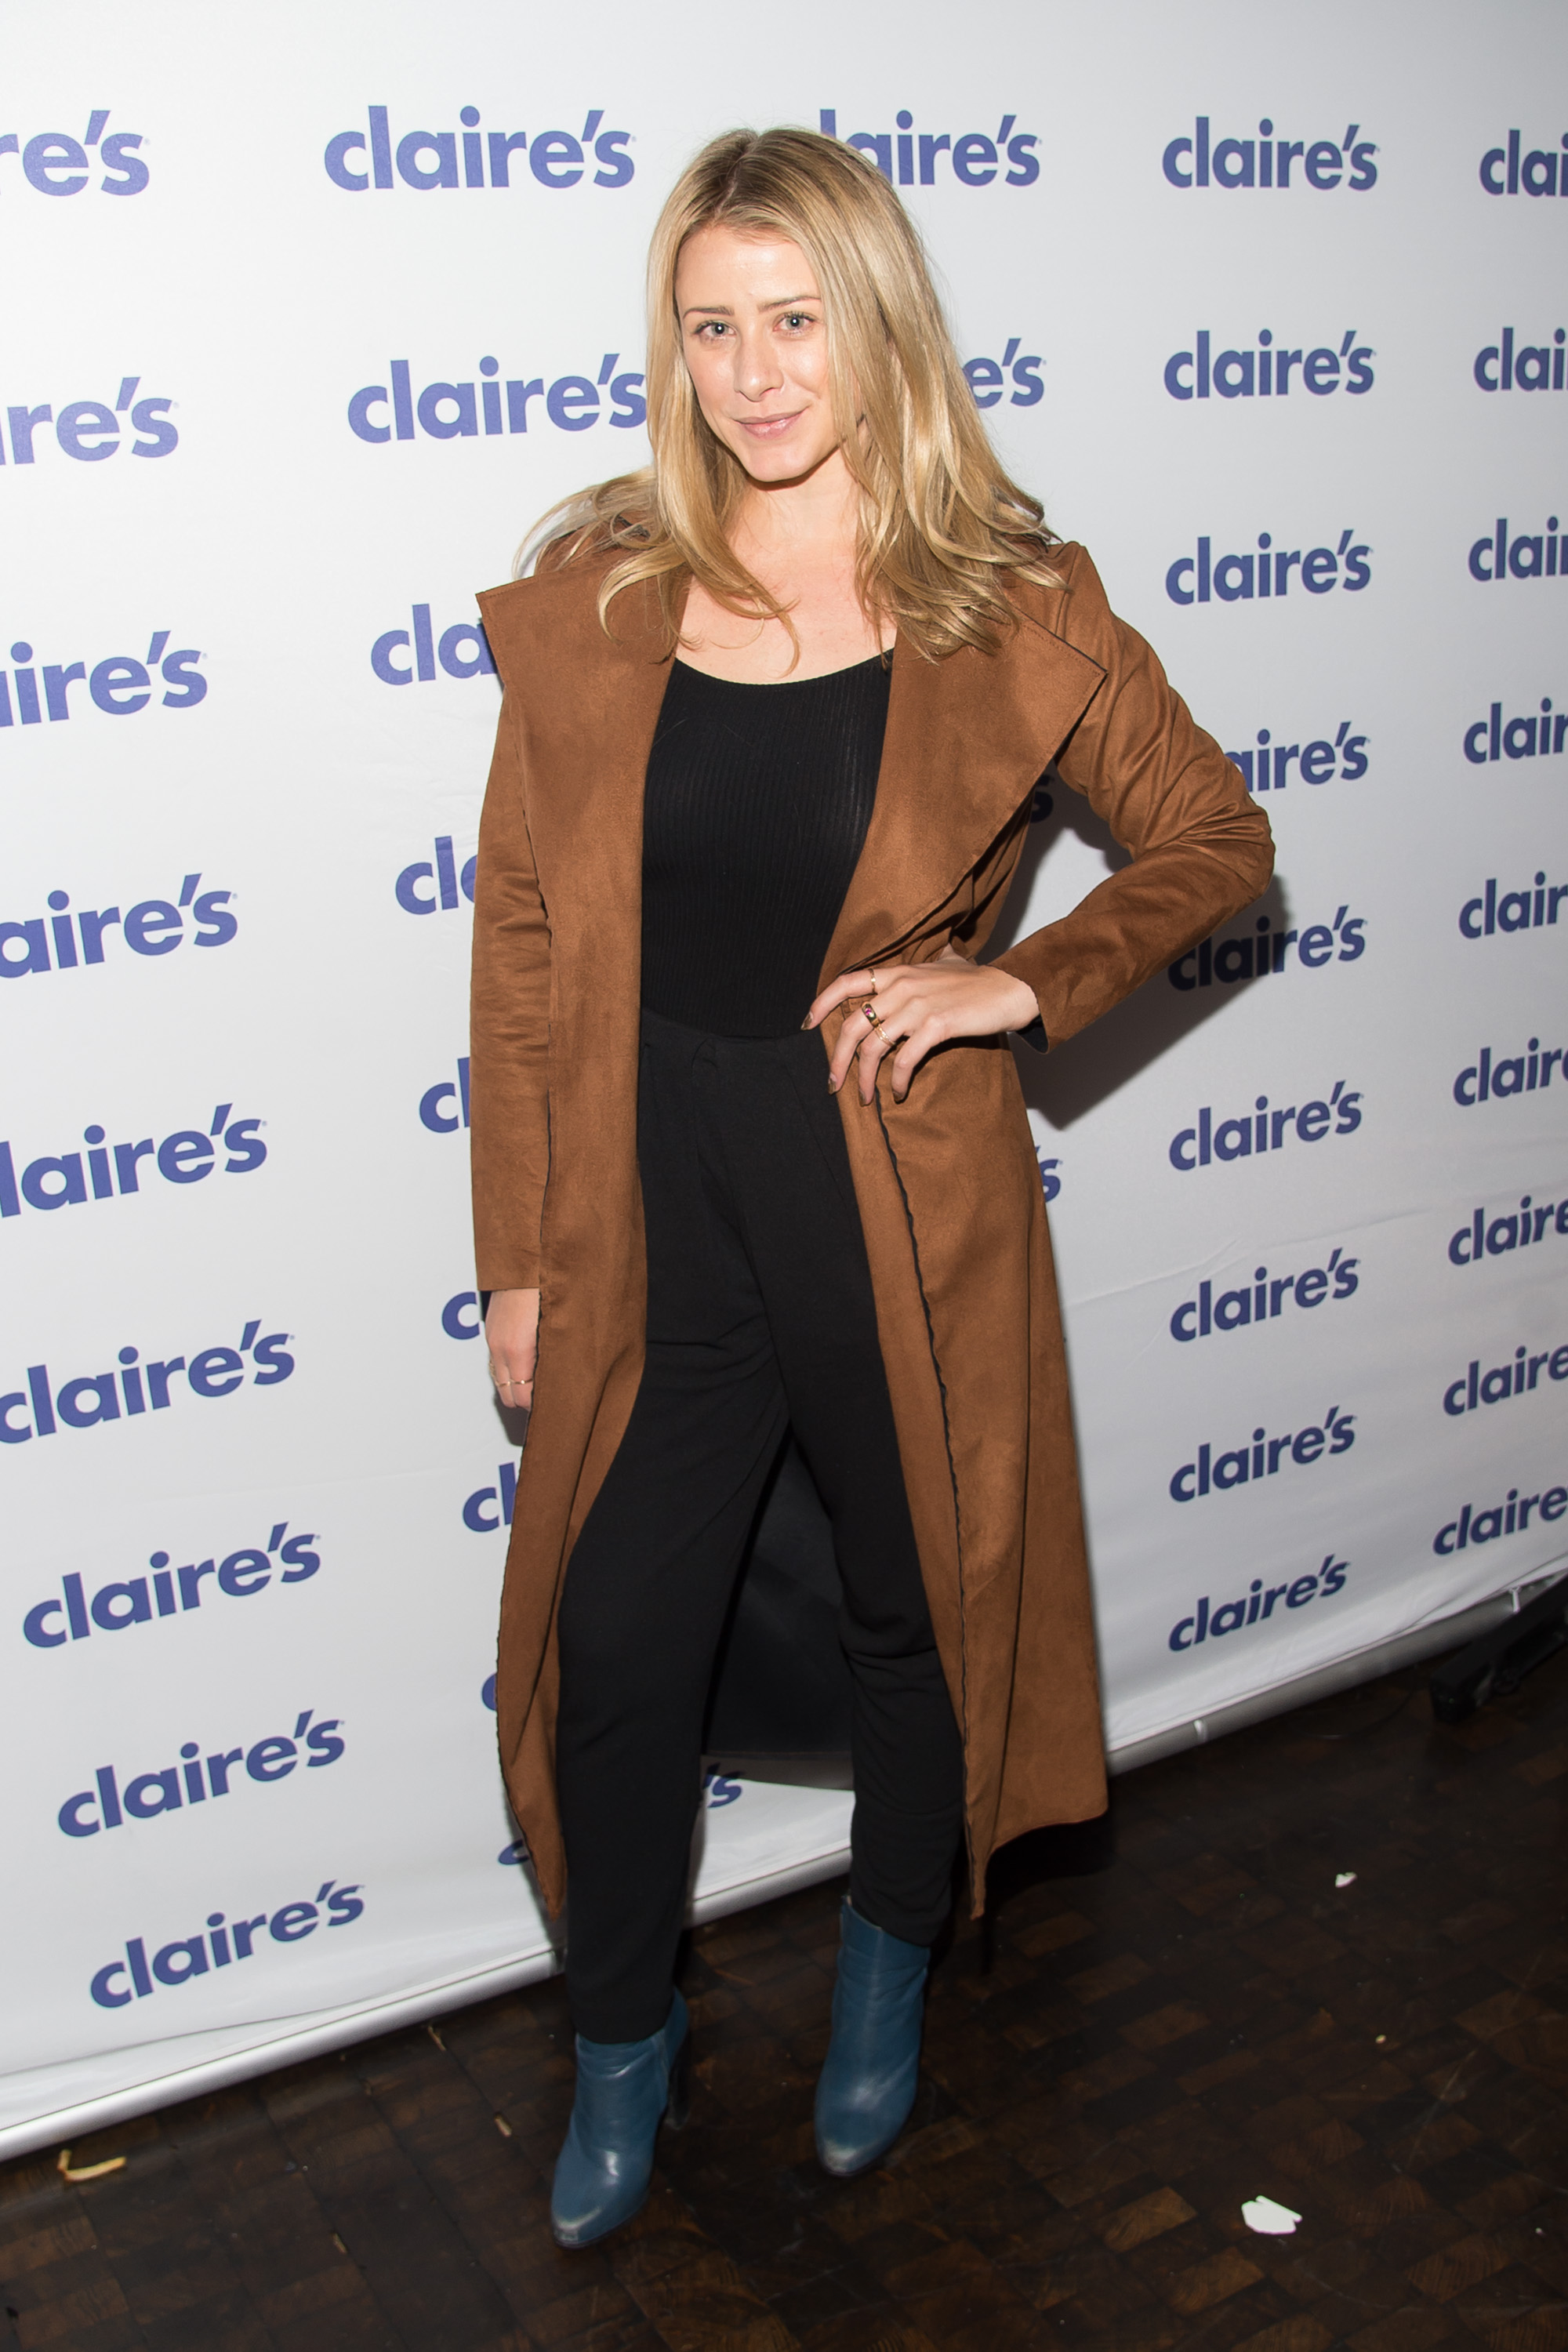 claire's store halloween party – empire images media